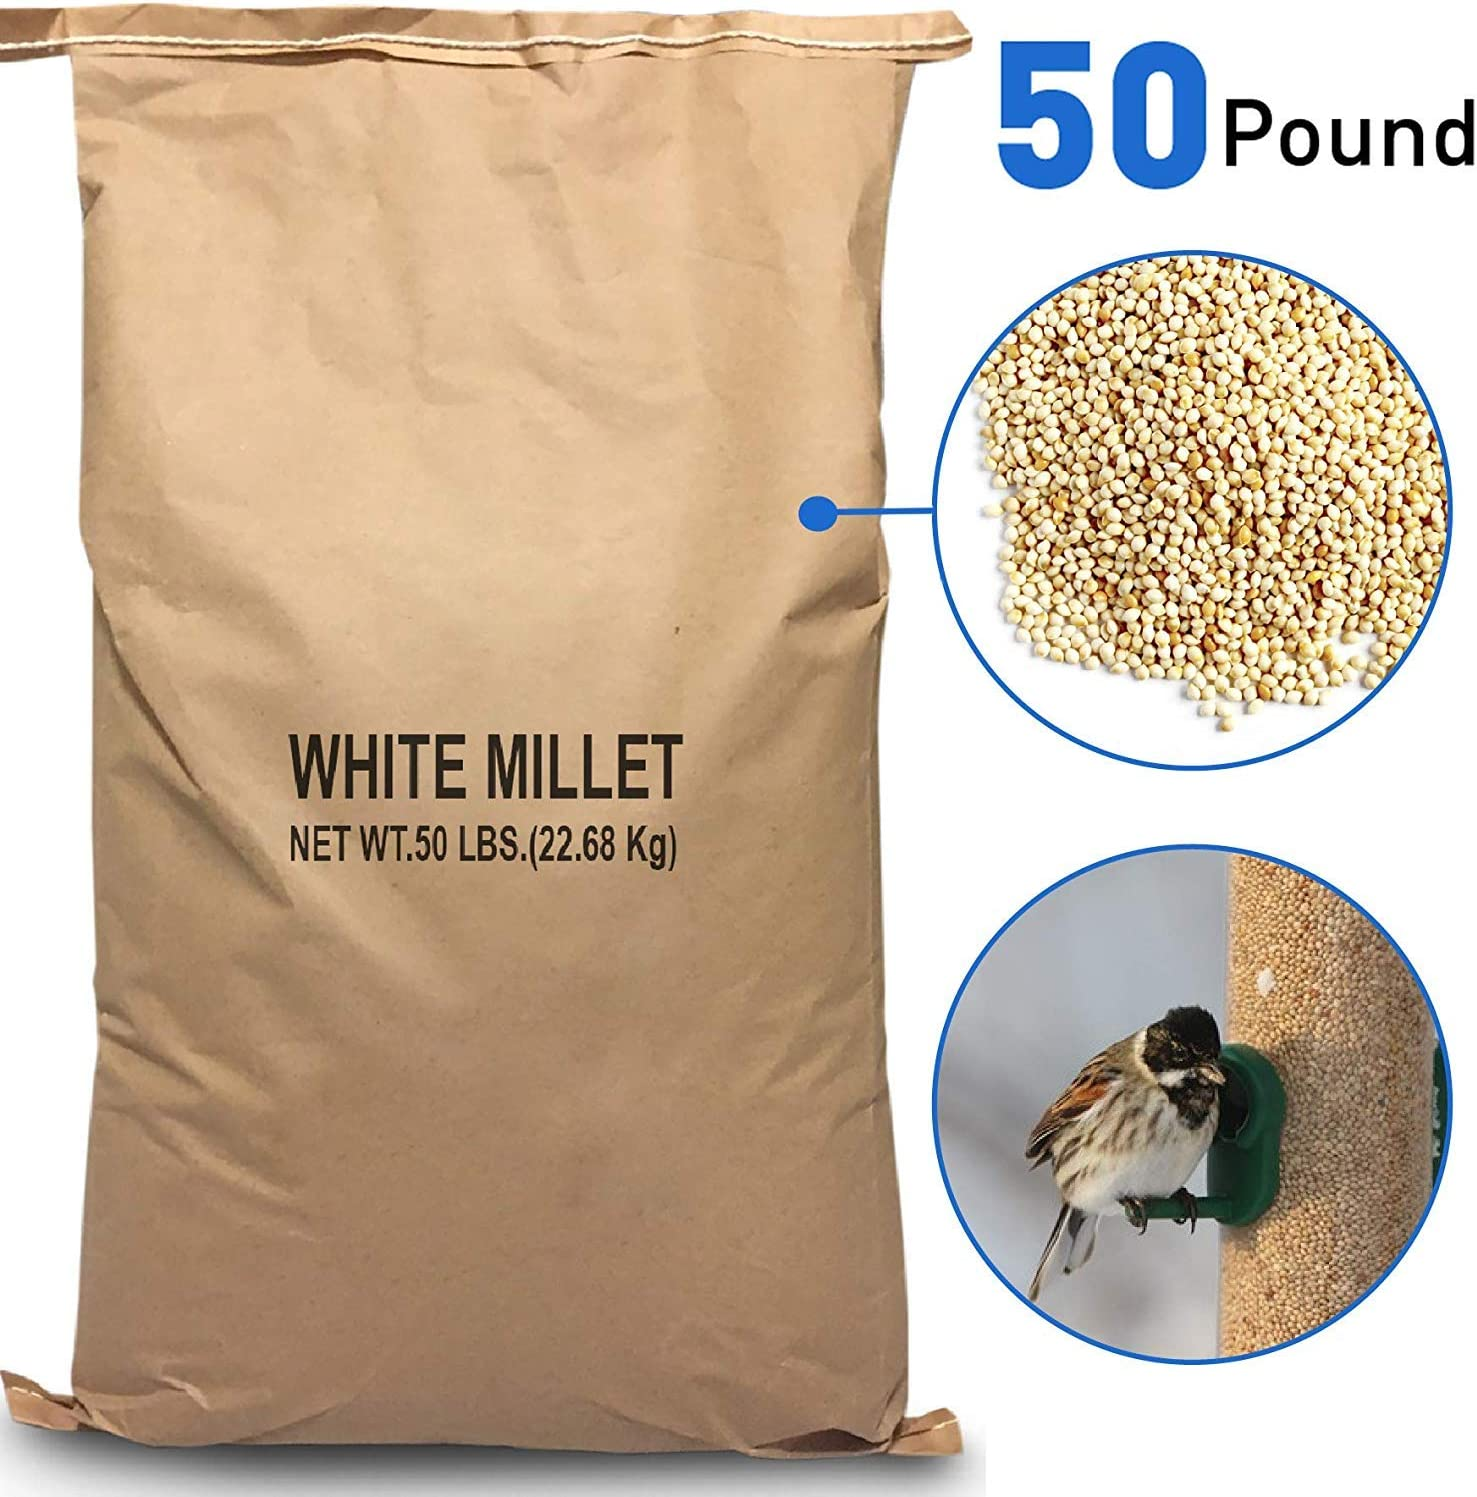 EasyGoProducts White Millet Wild Bird Food – 50 lb